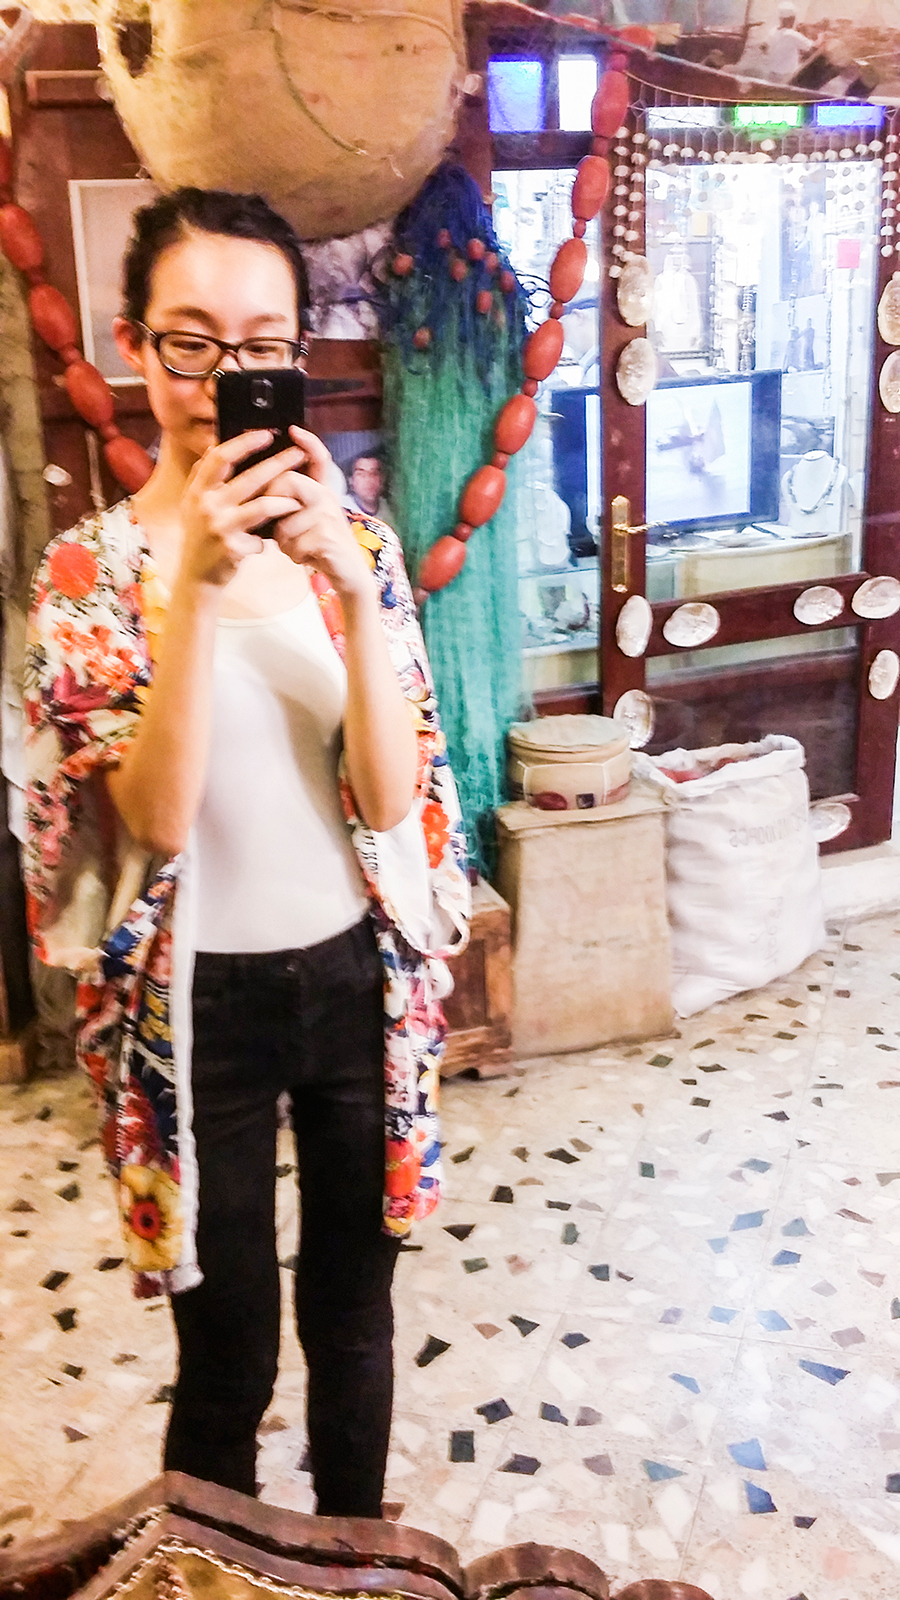 Mirror selfie in front of handicraft shops at Souq Waqif (سوق واقف), Doha, Qatar.